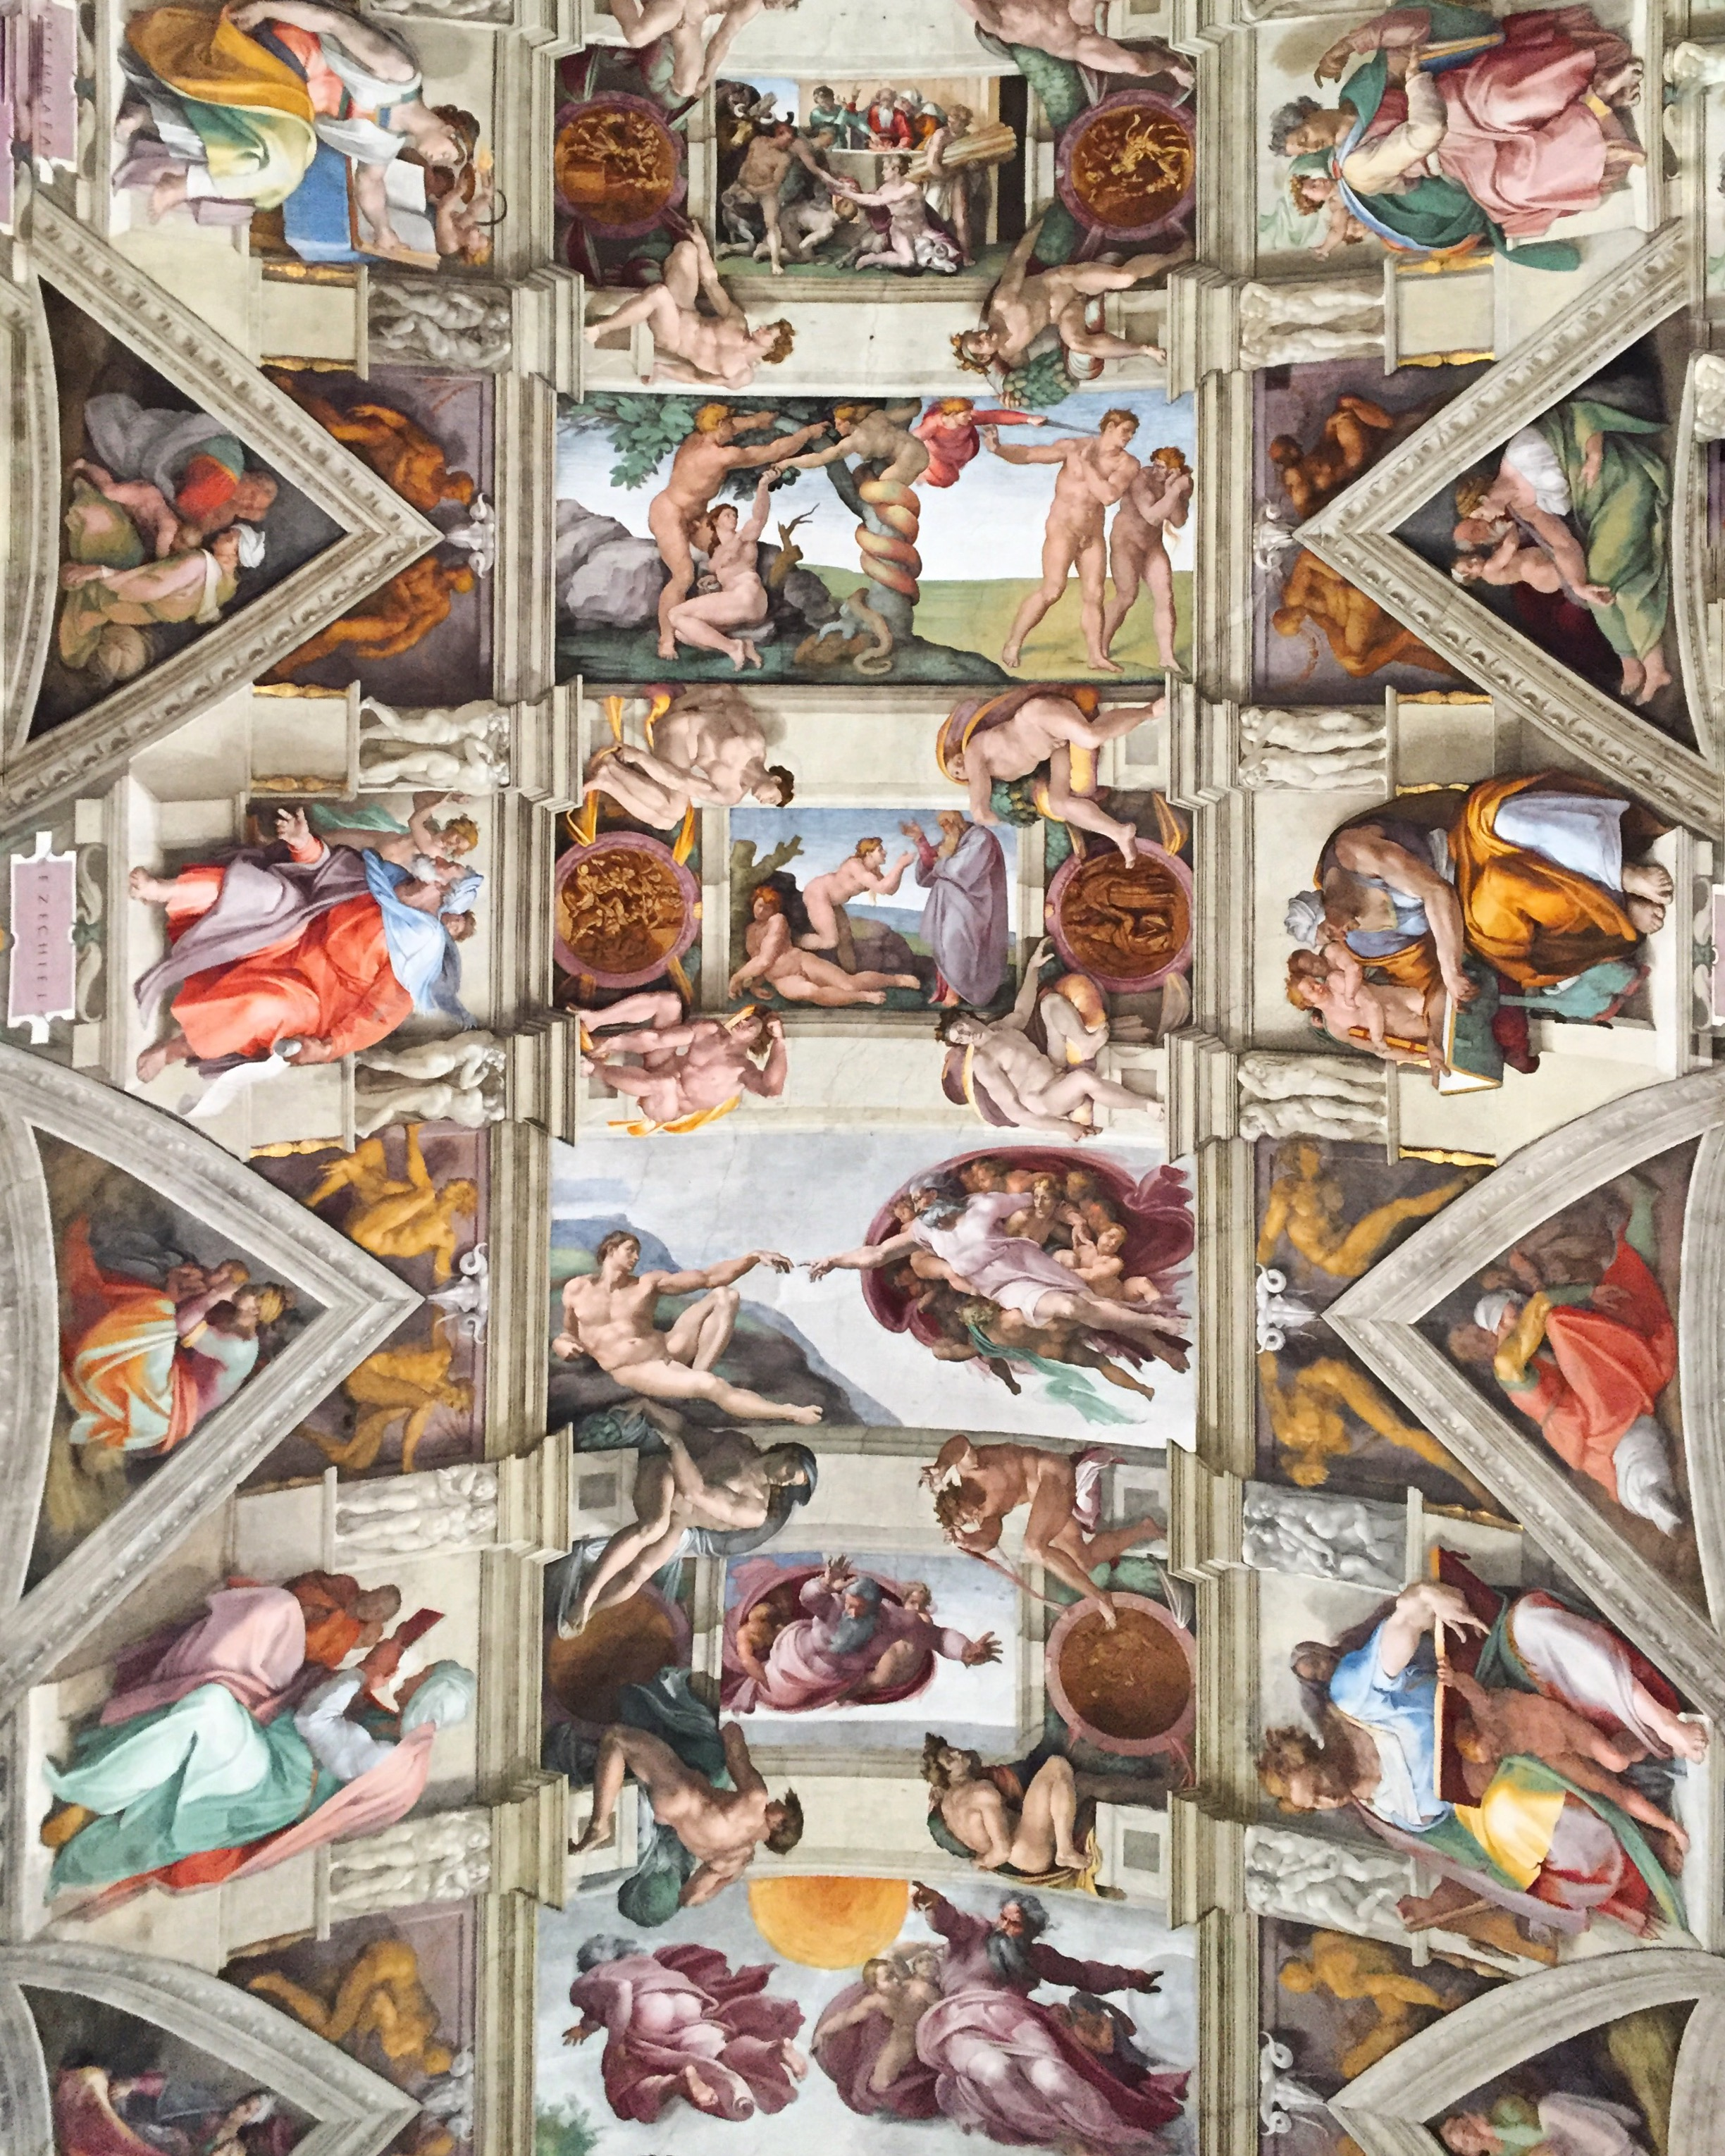 Osram Gives the Vatican New Life with LED Lighting Overhaul (Architectural Digest)   The project to relight the Sistine Chapel, the Raphael Rooms, St. Peter's Basilica, and the Sala Regia has taken eight years to complete